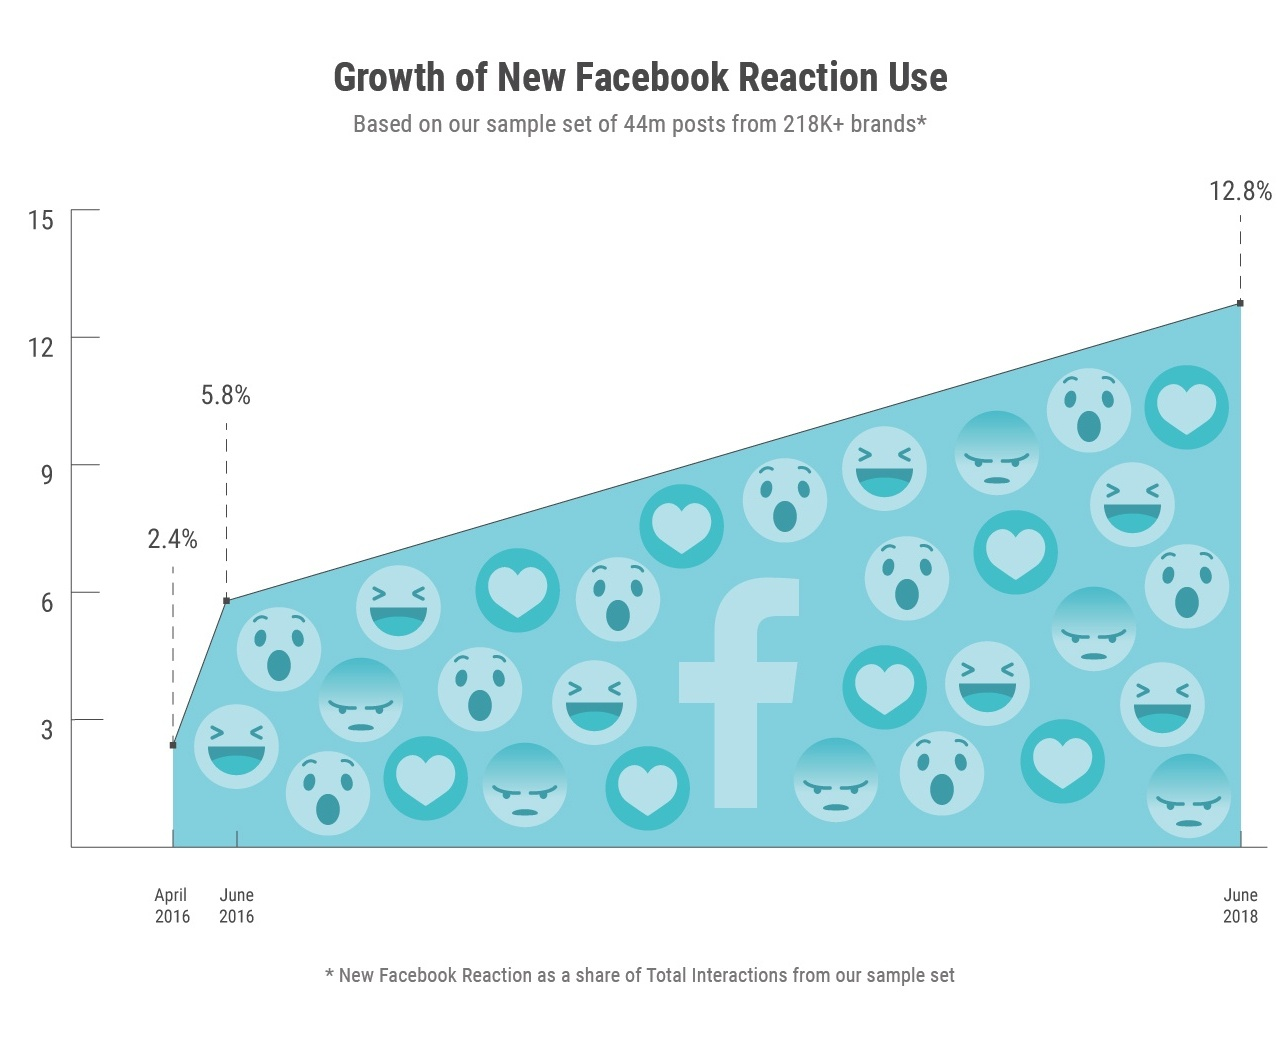 Chart showing Facebook Reactions usage over time